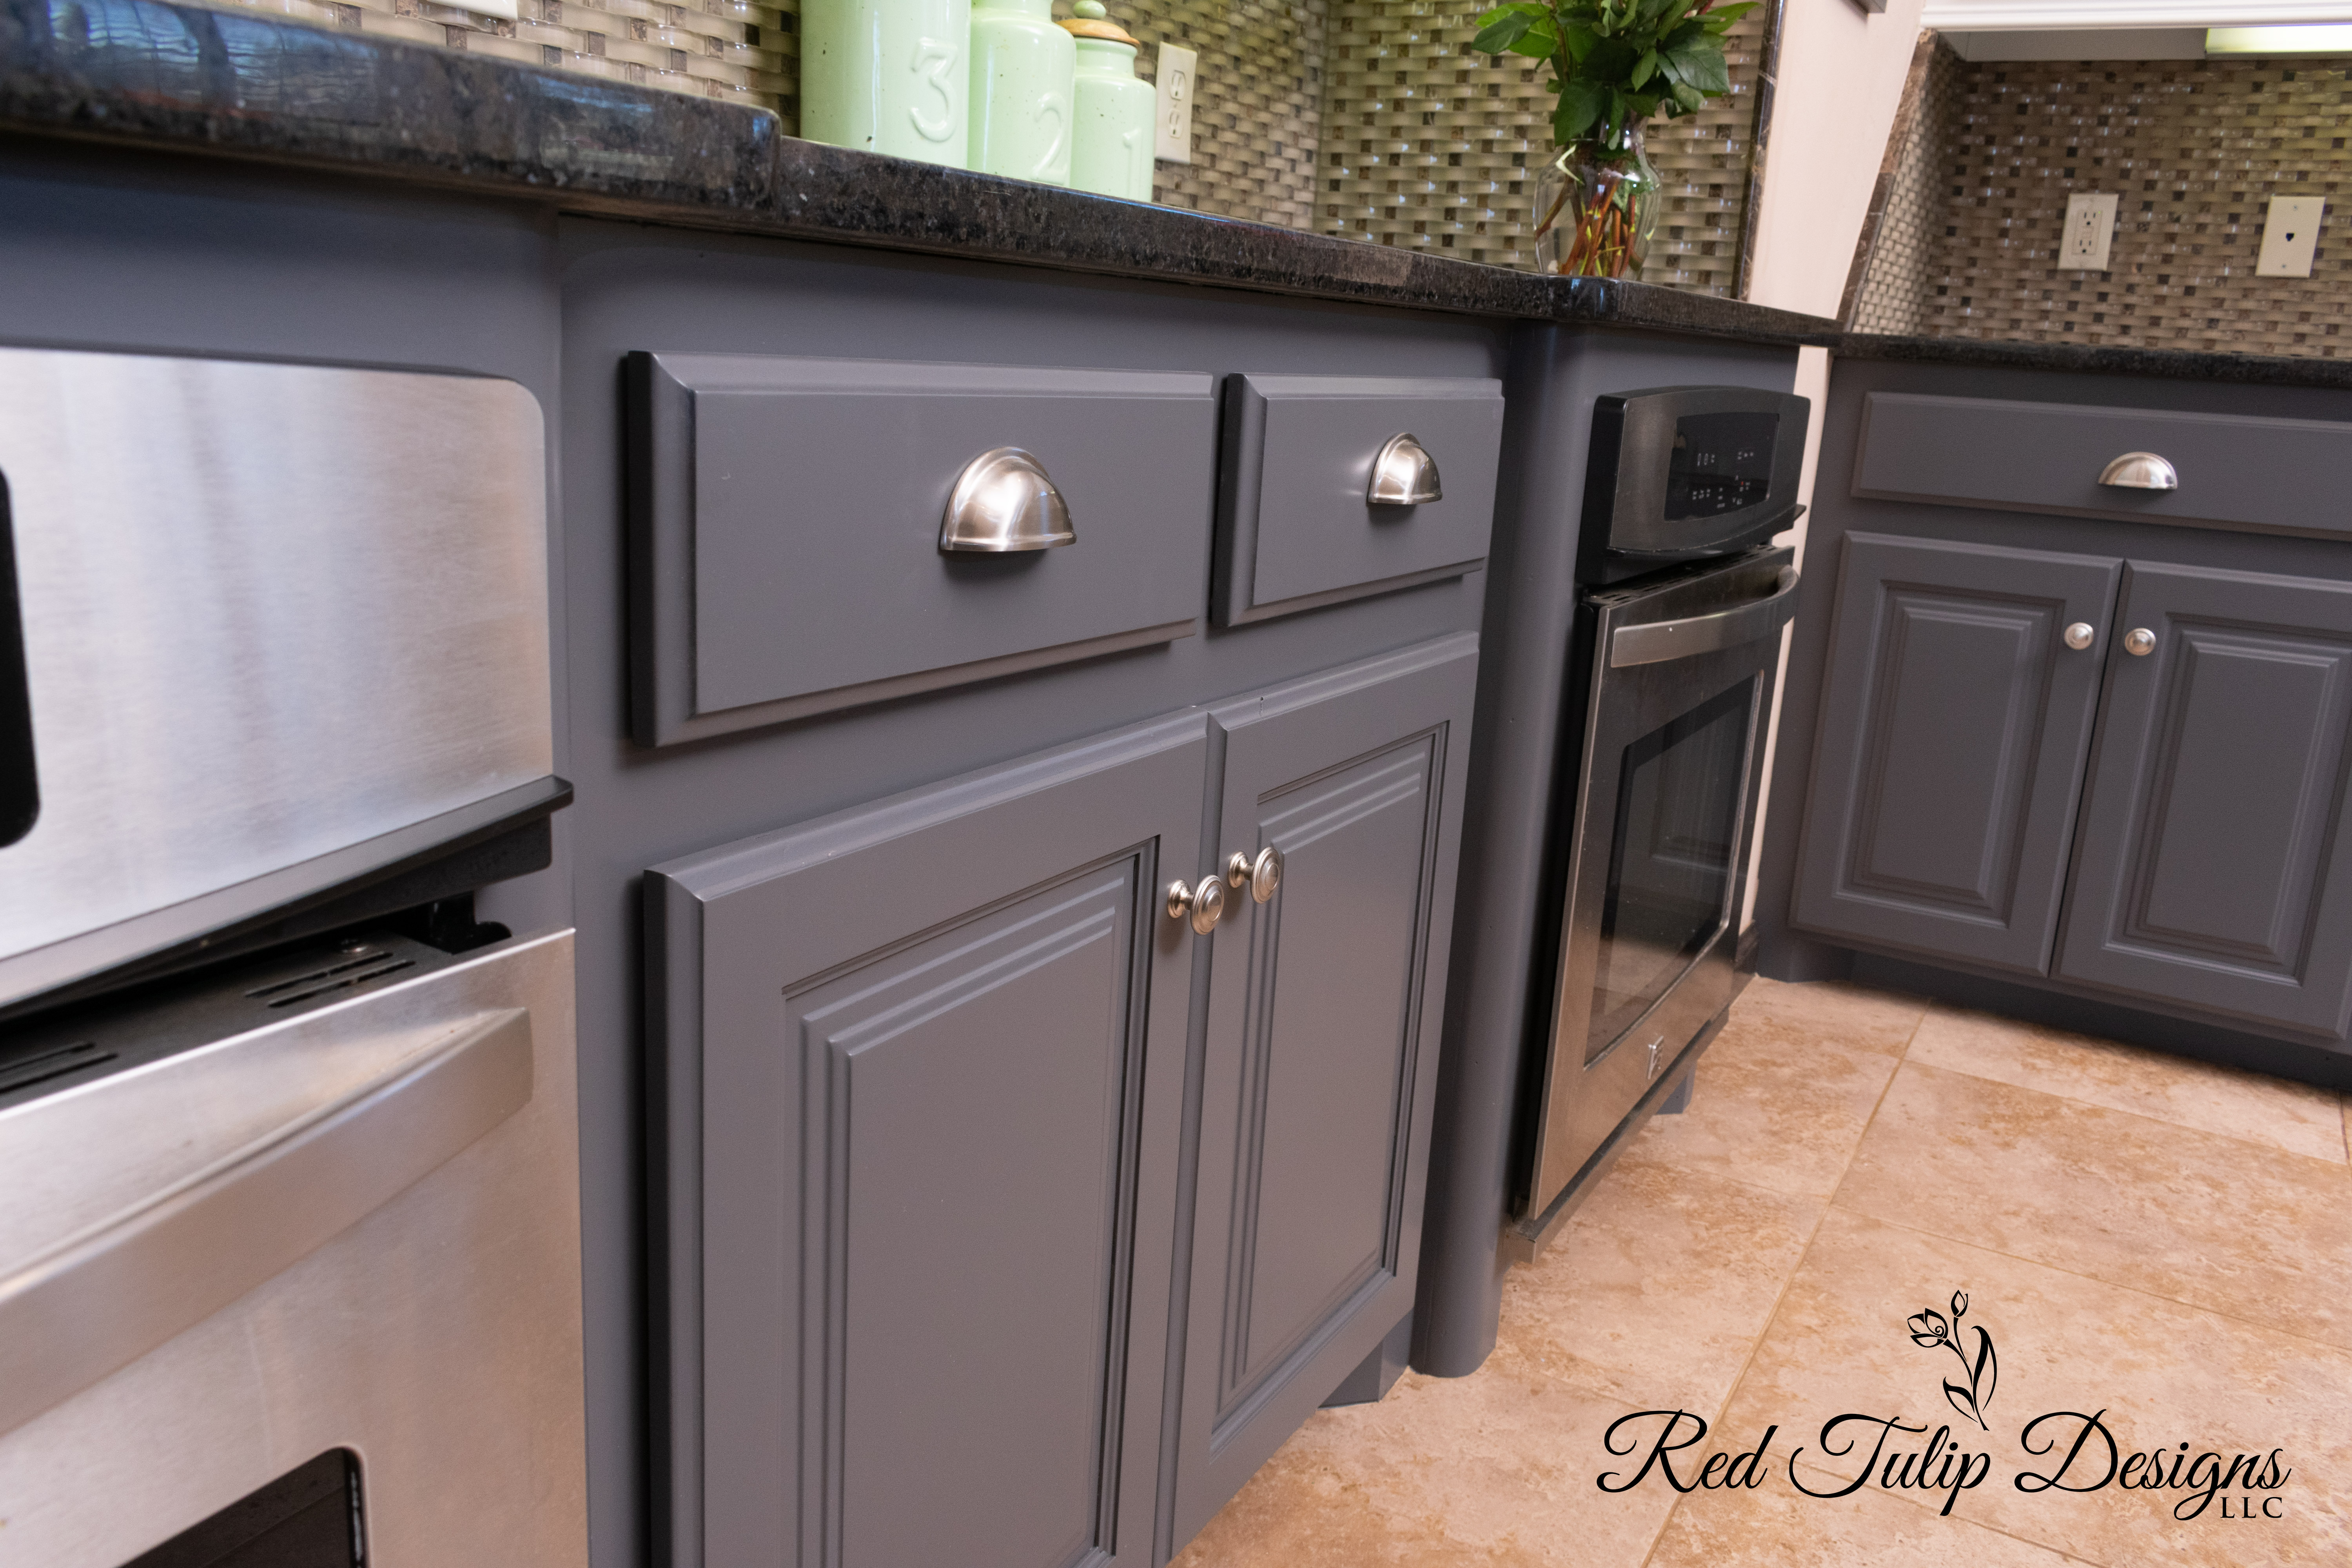 Peppercorn_Lower_Cabinets_with_Brushed_N